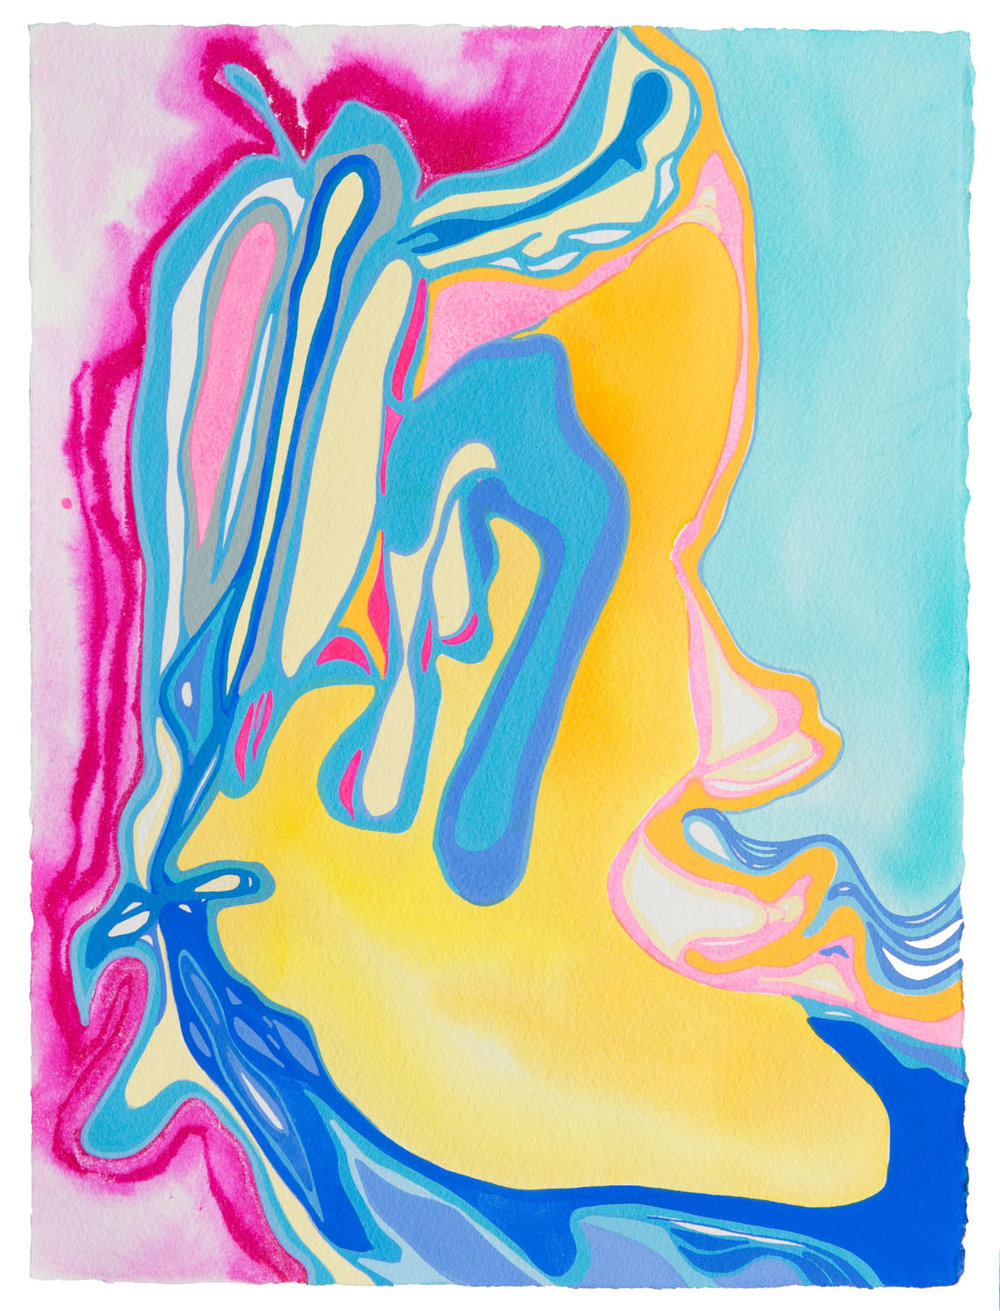 untitled ae, 2017 15 x 11 1/2 inches gouache on paper 100-130